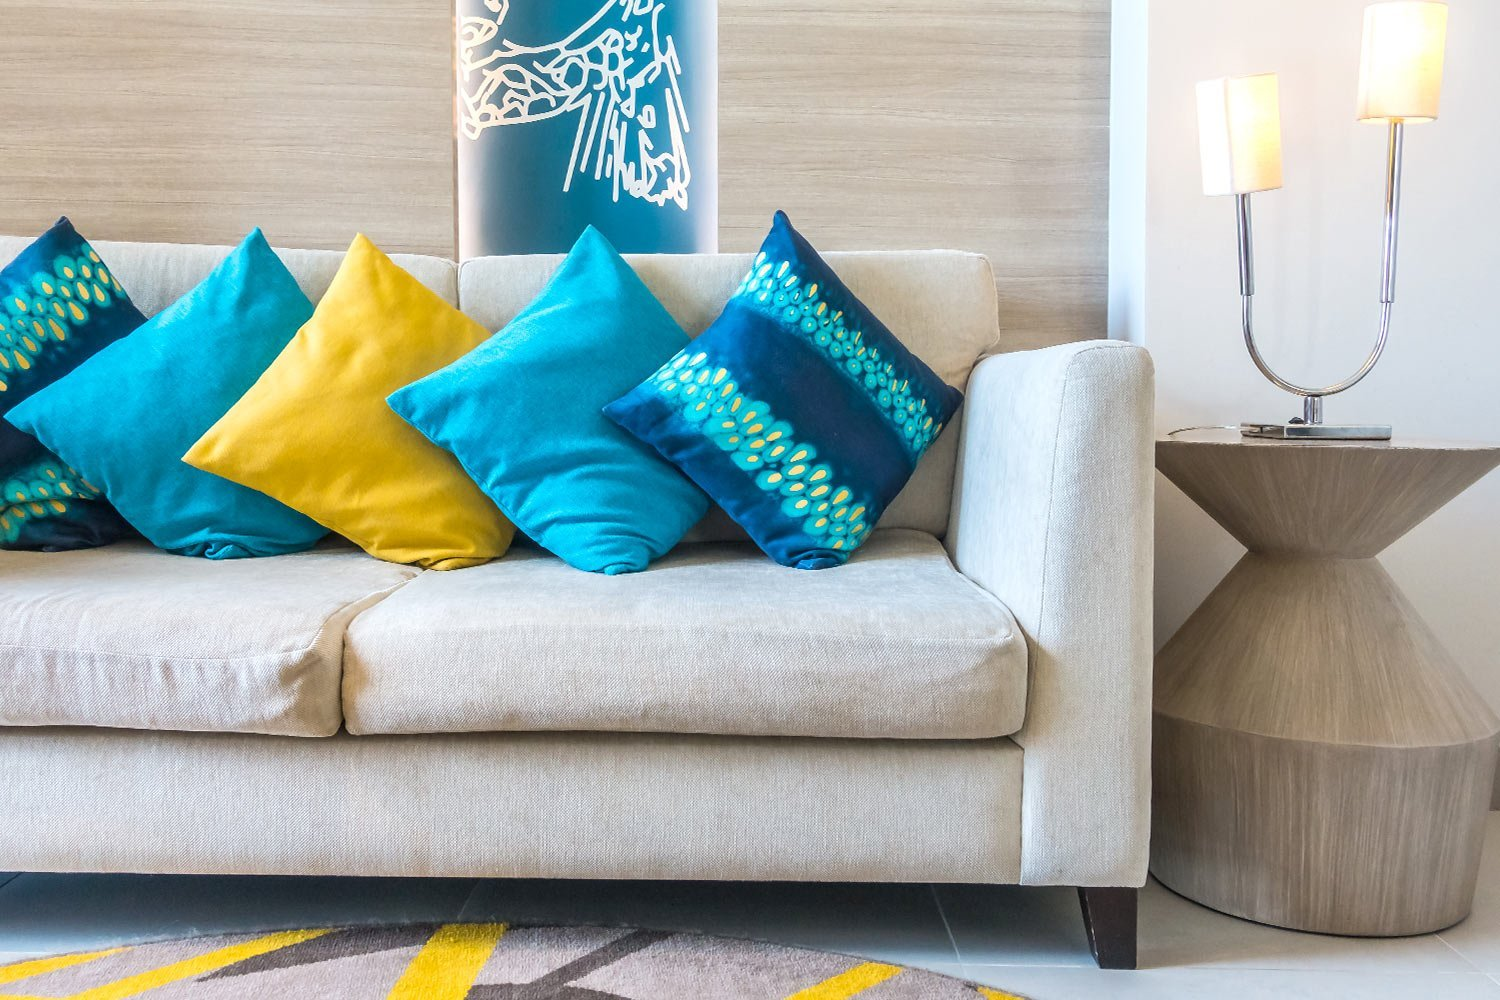 5-decorative_pillows_4.jpg